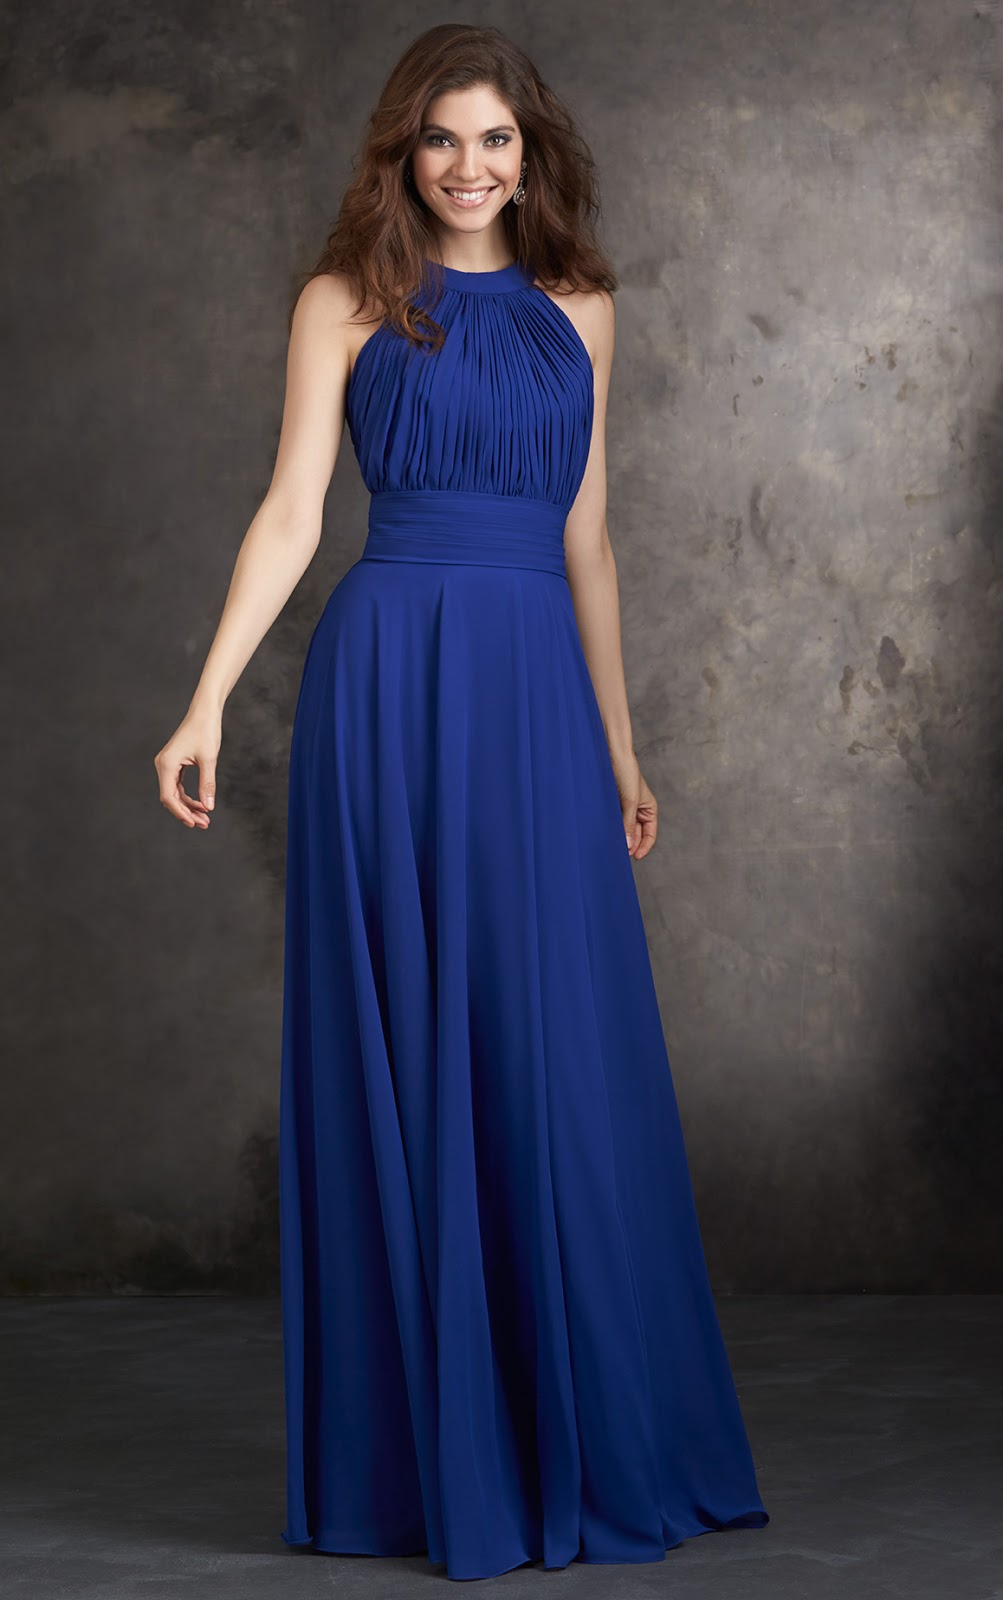 http://www.aislestyle.co.uk/jewel-sleeveless-natural-backless-aline-bridesmaid-dresses-p-3525.html